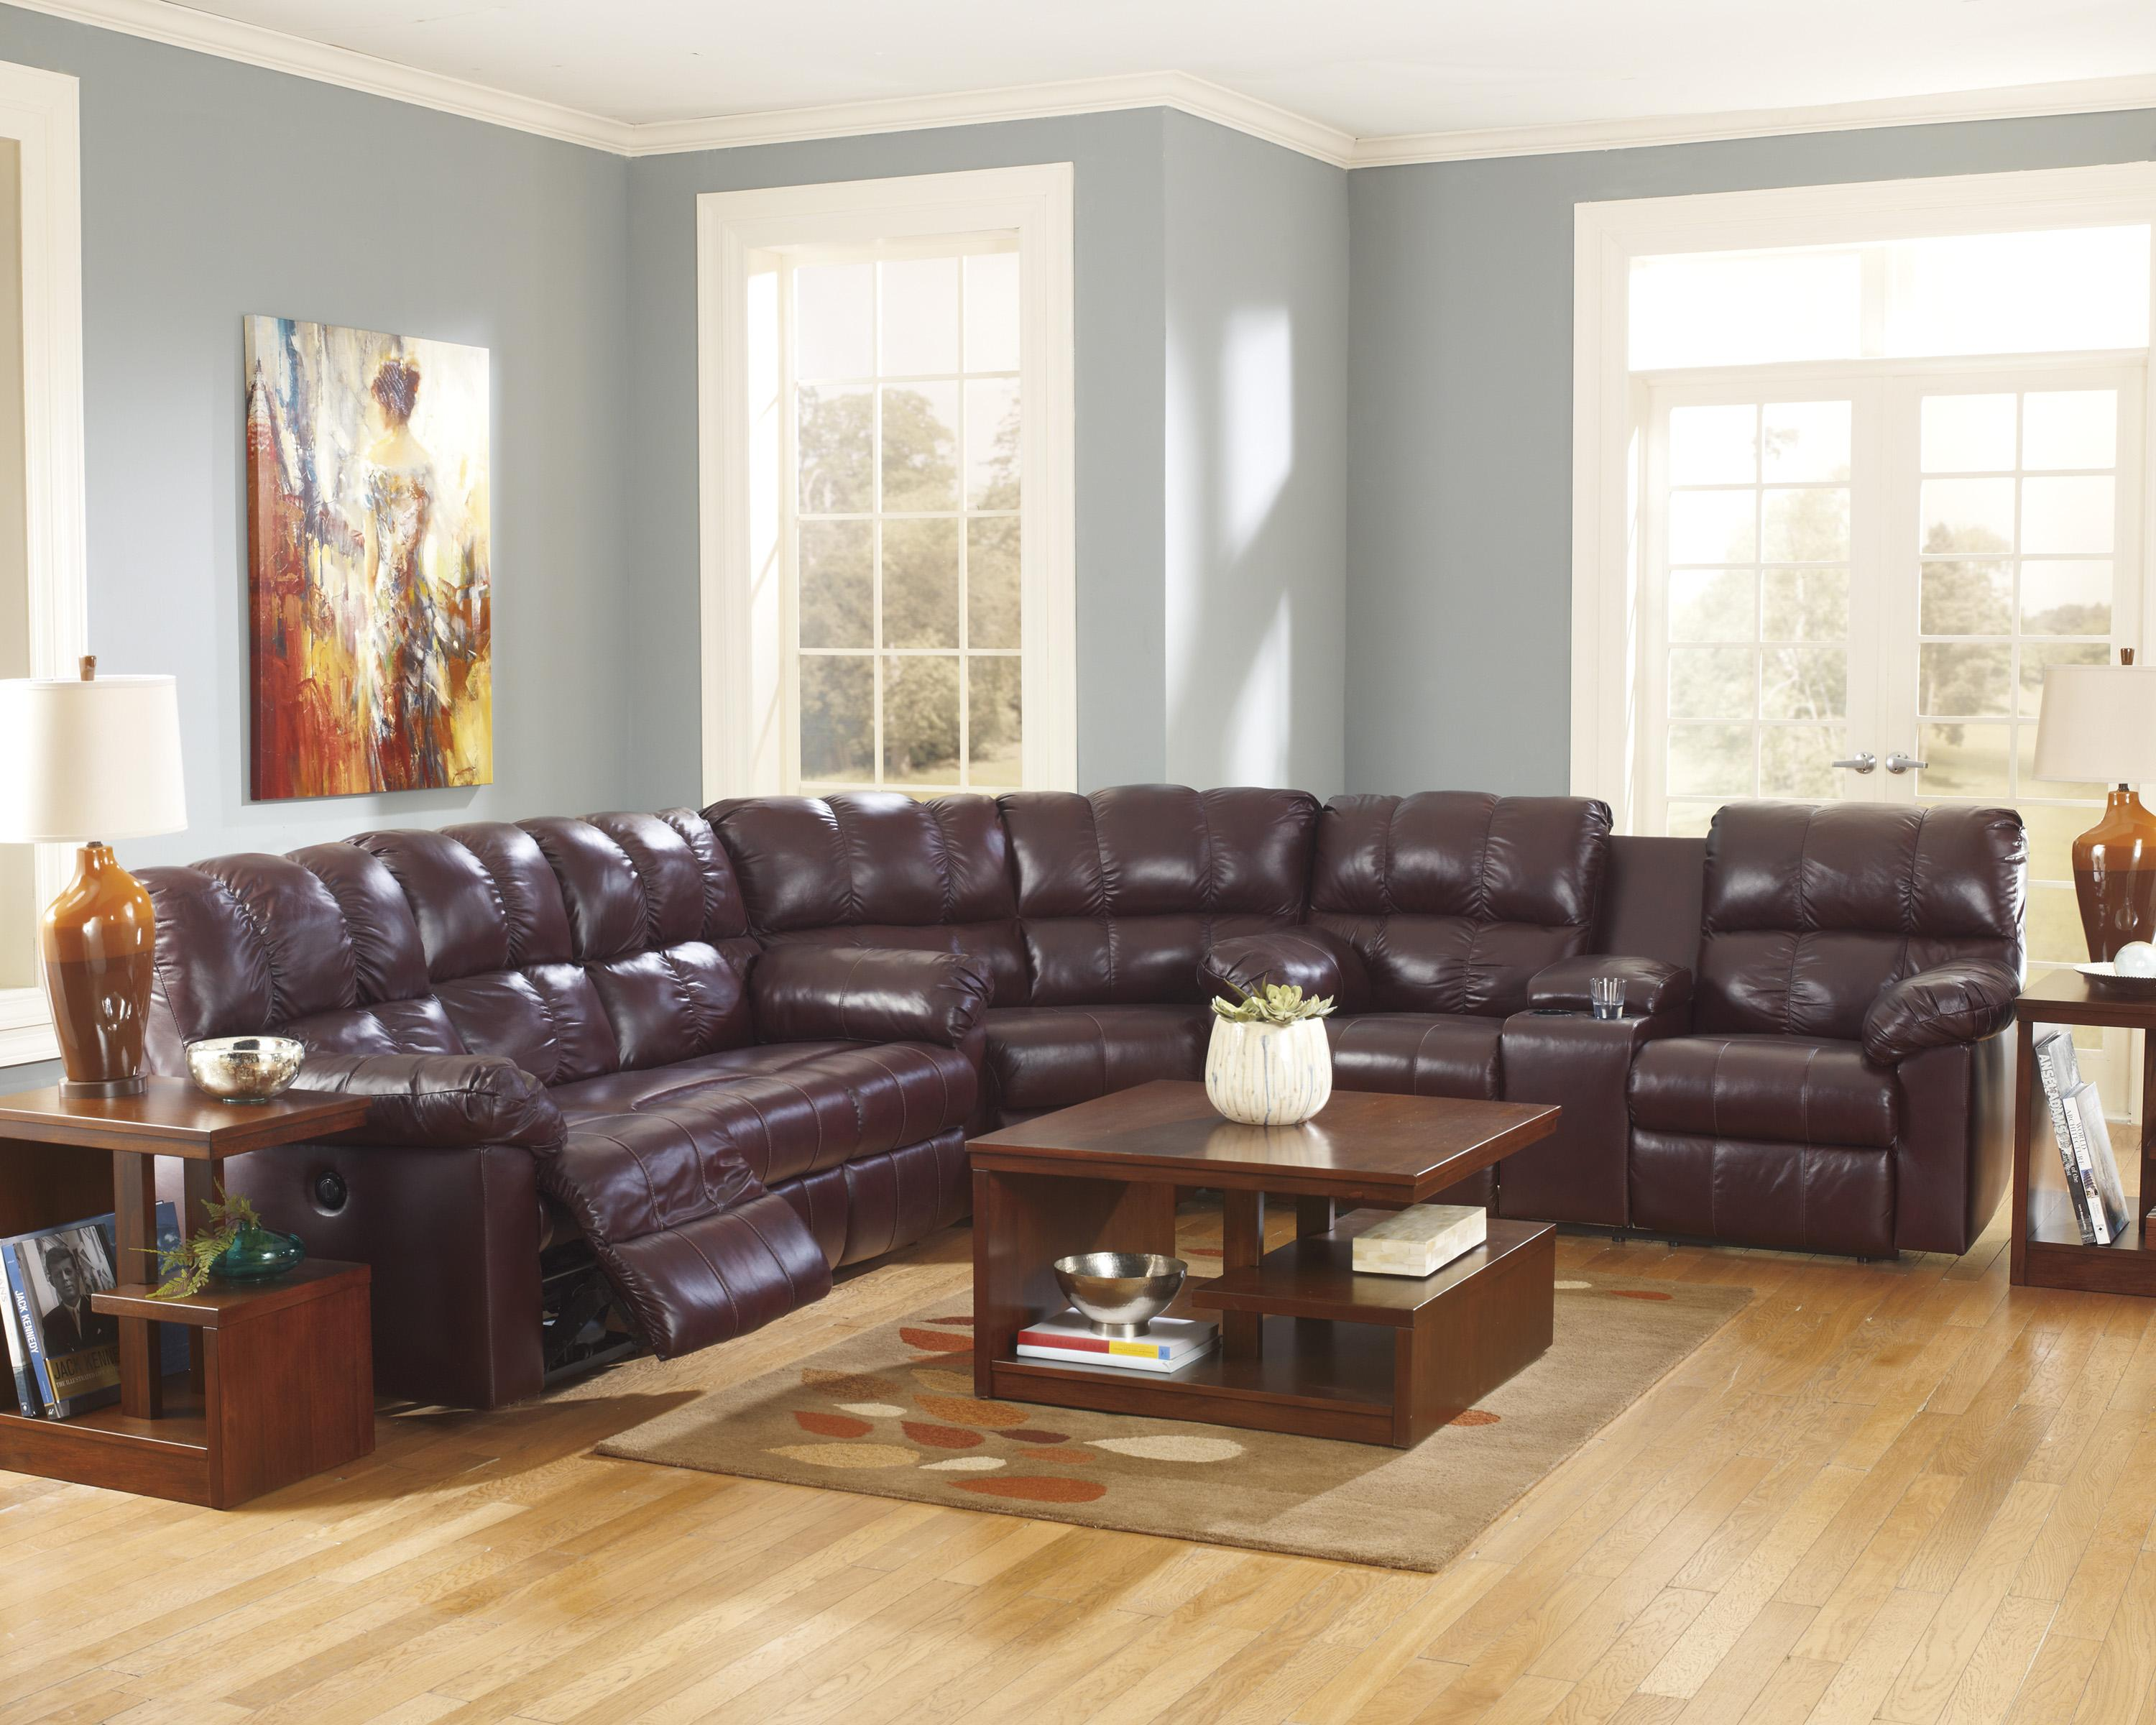 Signature Design by Ashley Kennard - Burgundy Reclining Sectional Sofa - Item Number: 2900094+88+77